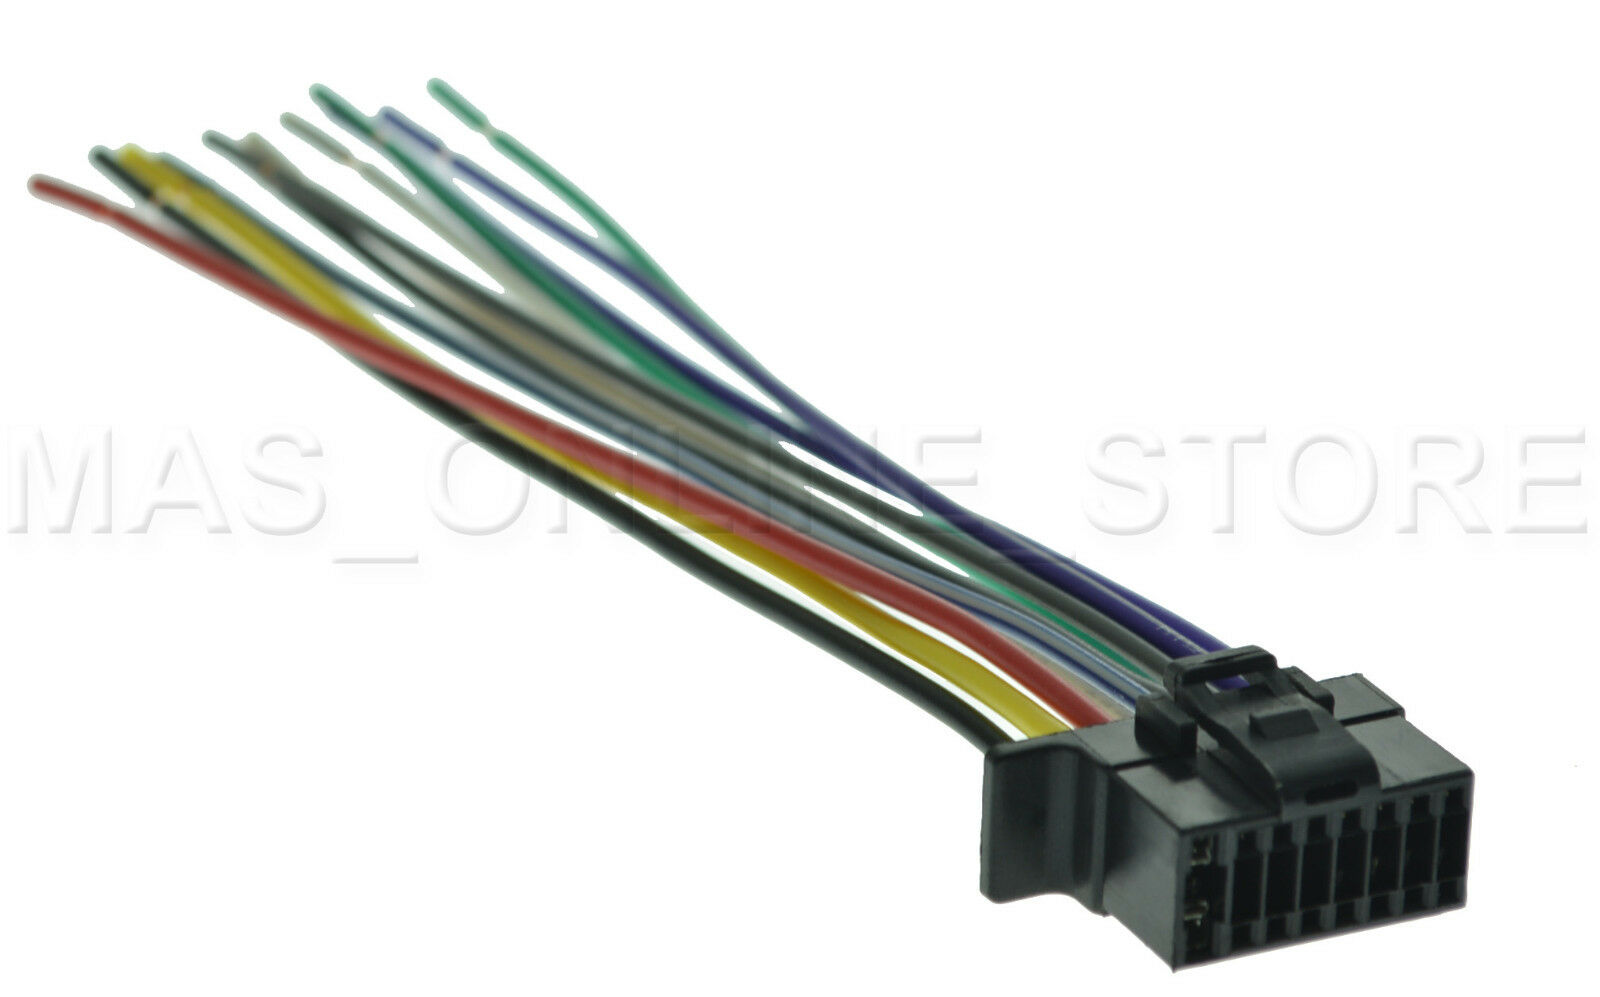 Wire Harness For Sony Mexn4000bt Mex N4000bt Pays Today Ships Wiring Replacement Norton Secured Powered By Verisign